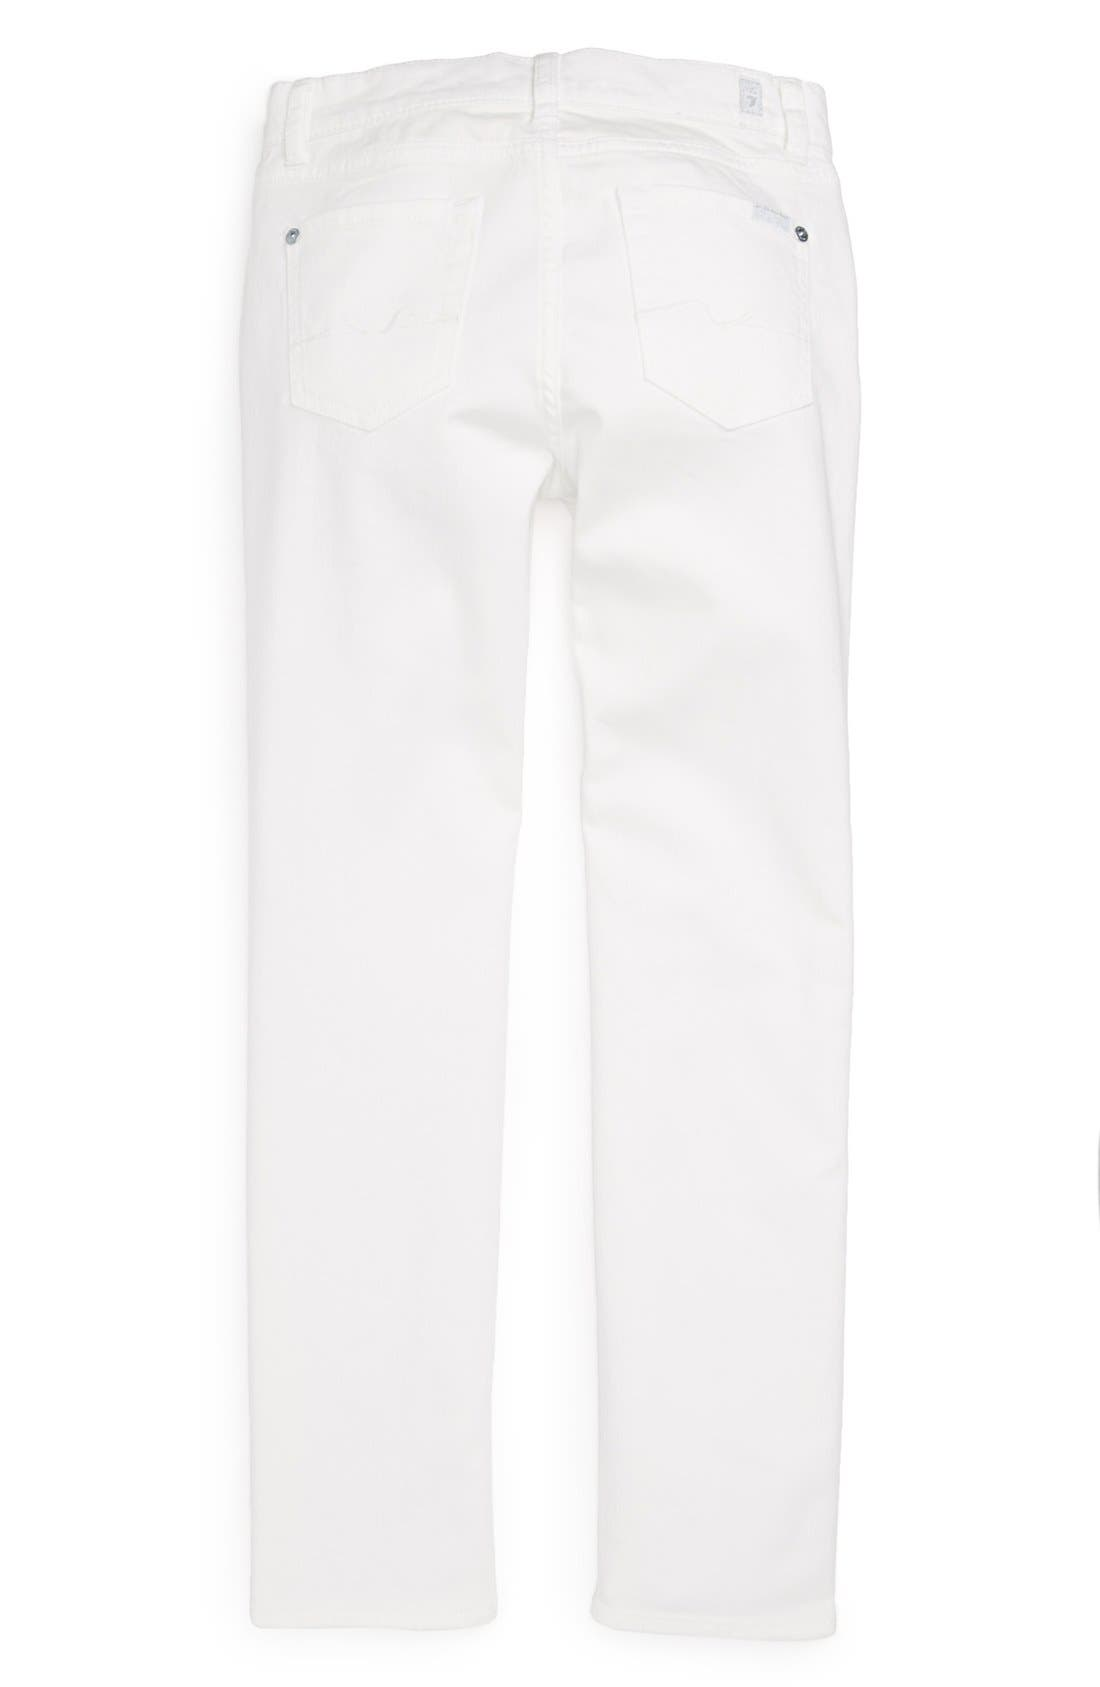 Alternate Image 1 Selected - 7 For All Mankind® 'The Skinny' Jeans (Little Girls & Big Girls)